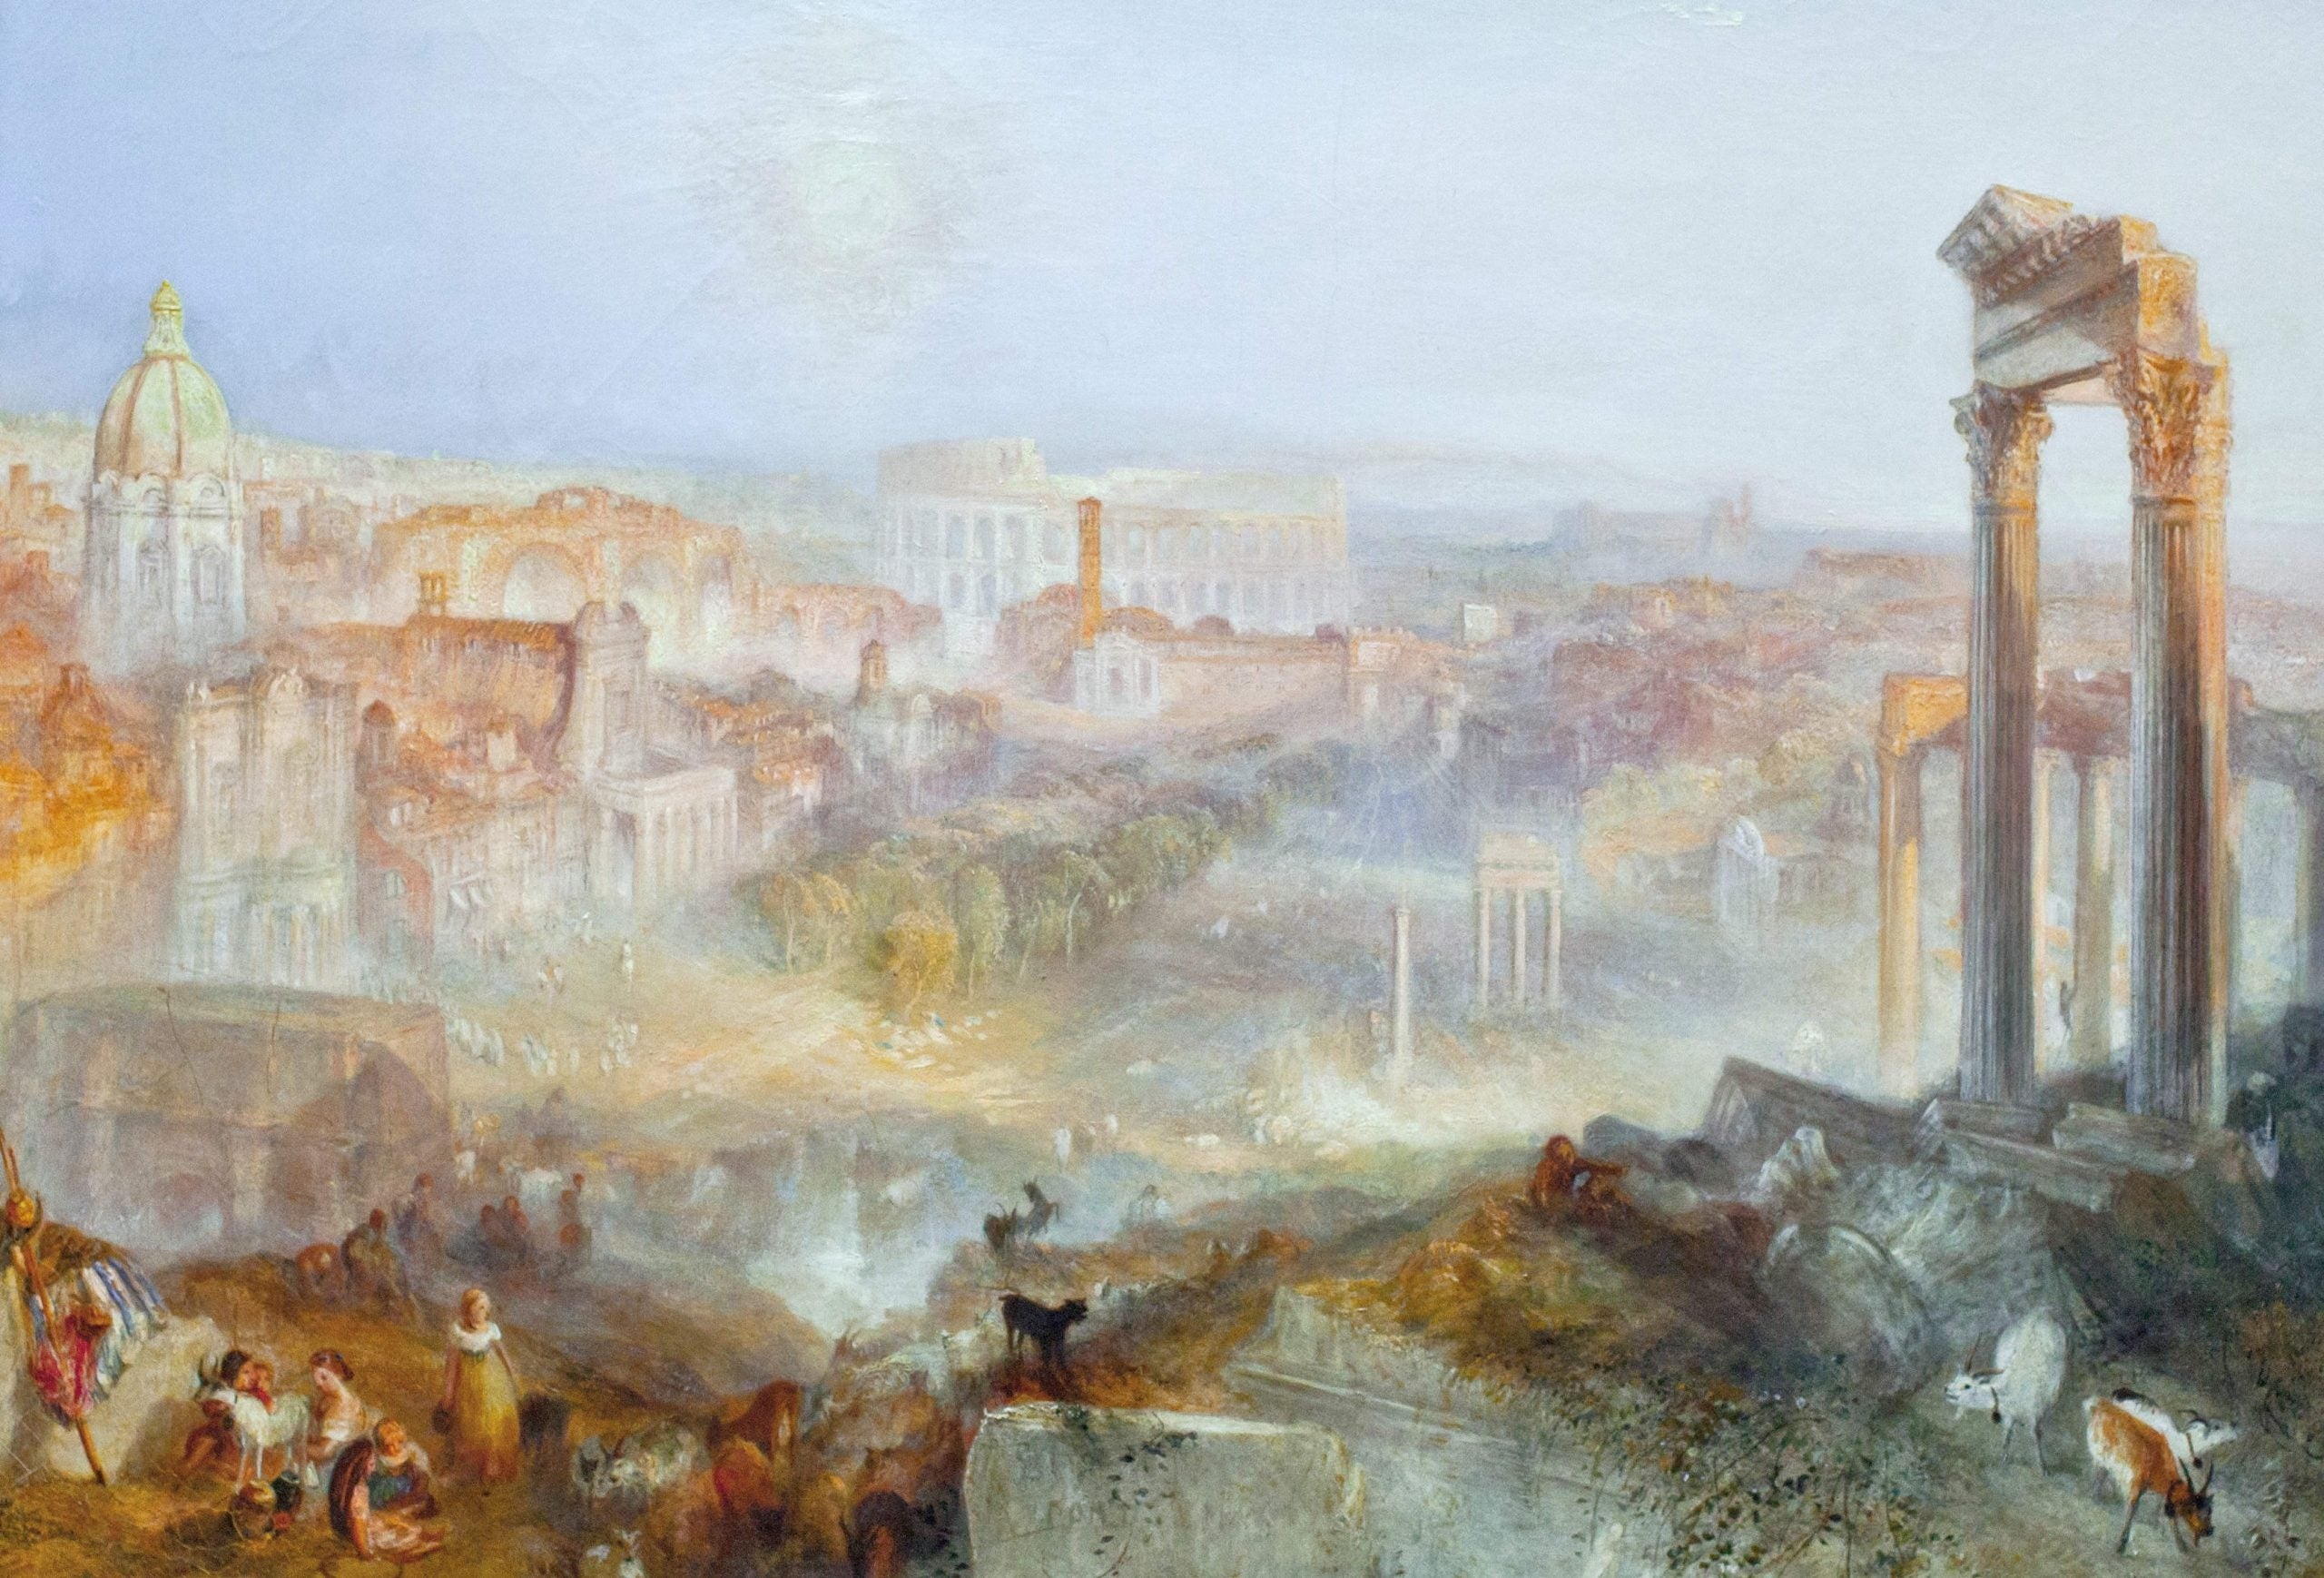 A portrait of the artist: is it time we looked at Turner differently?